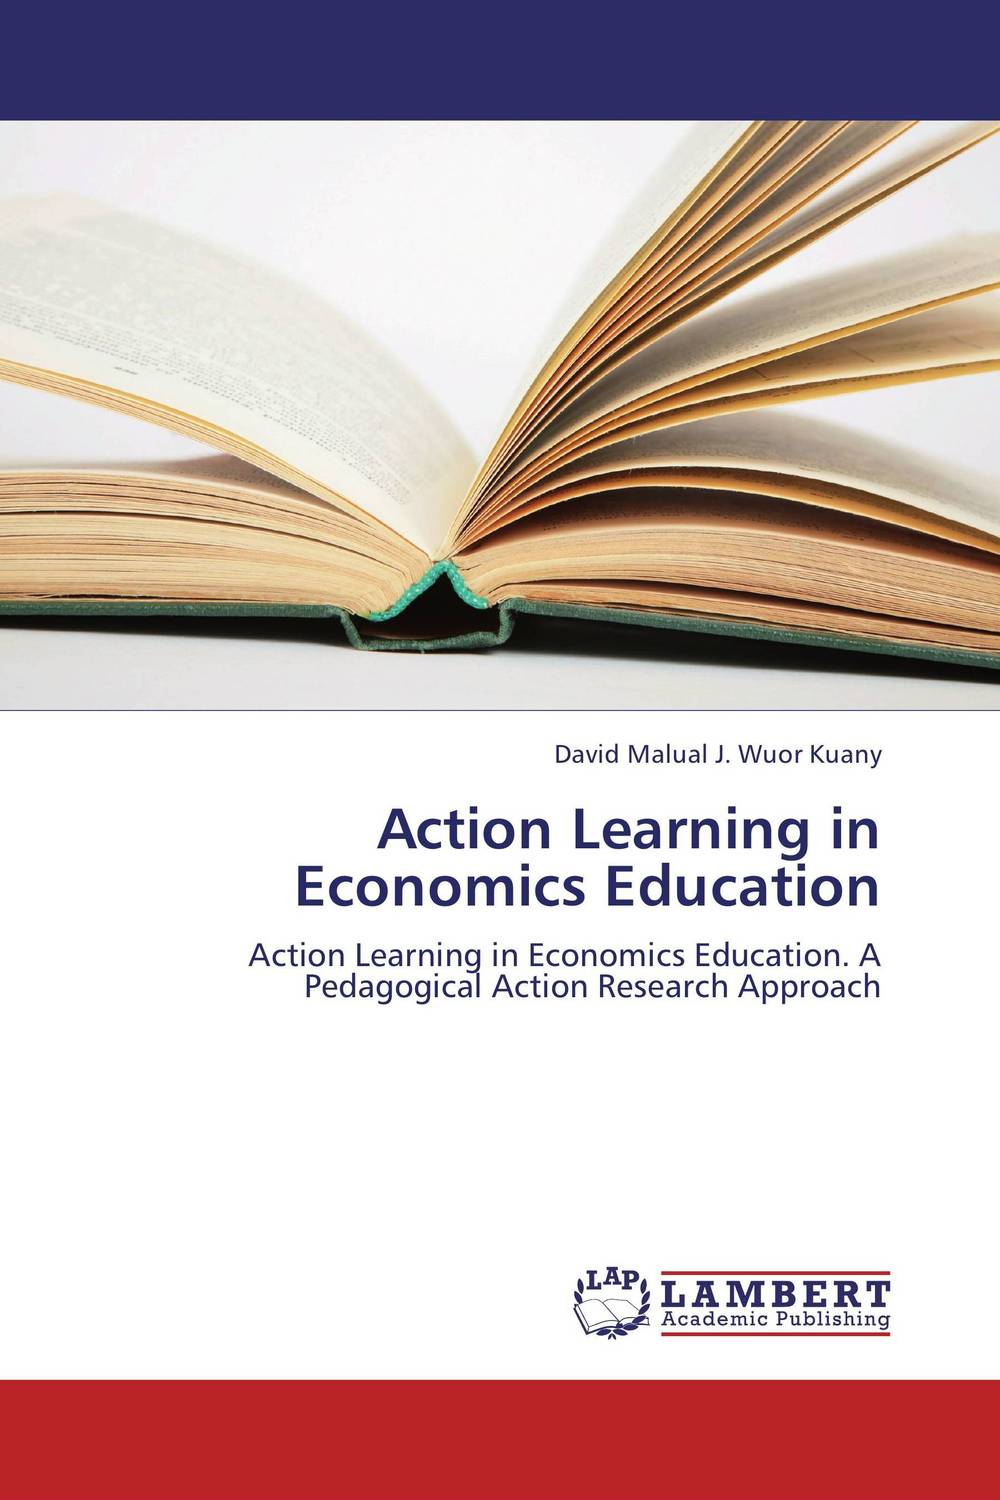 Action Learning in Economics Education teachers as team leaders in a professional learning community